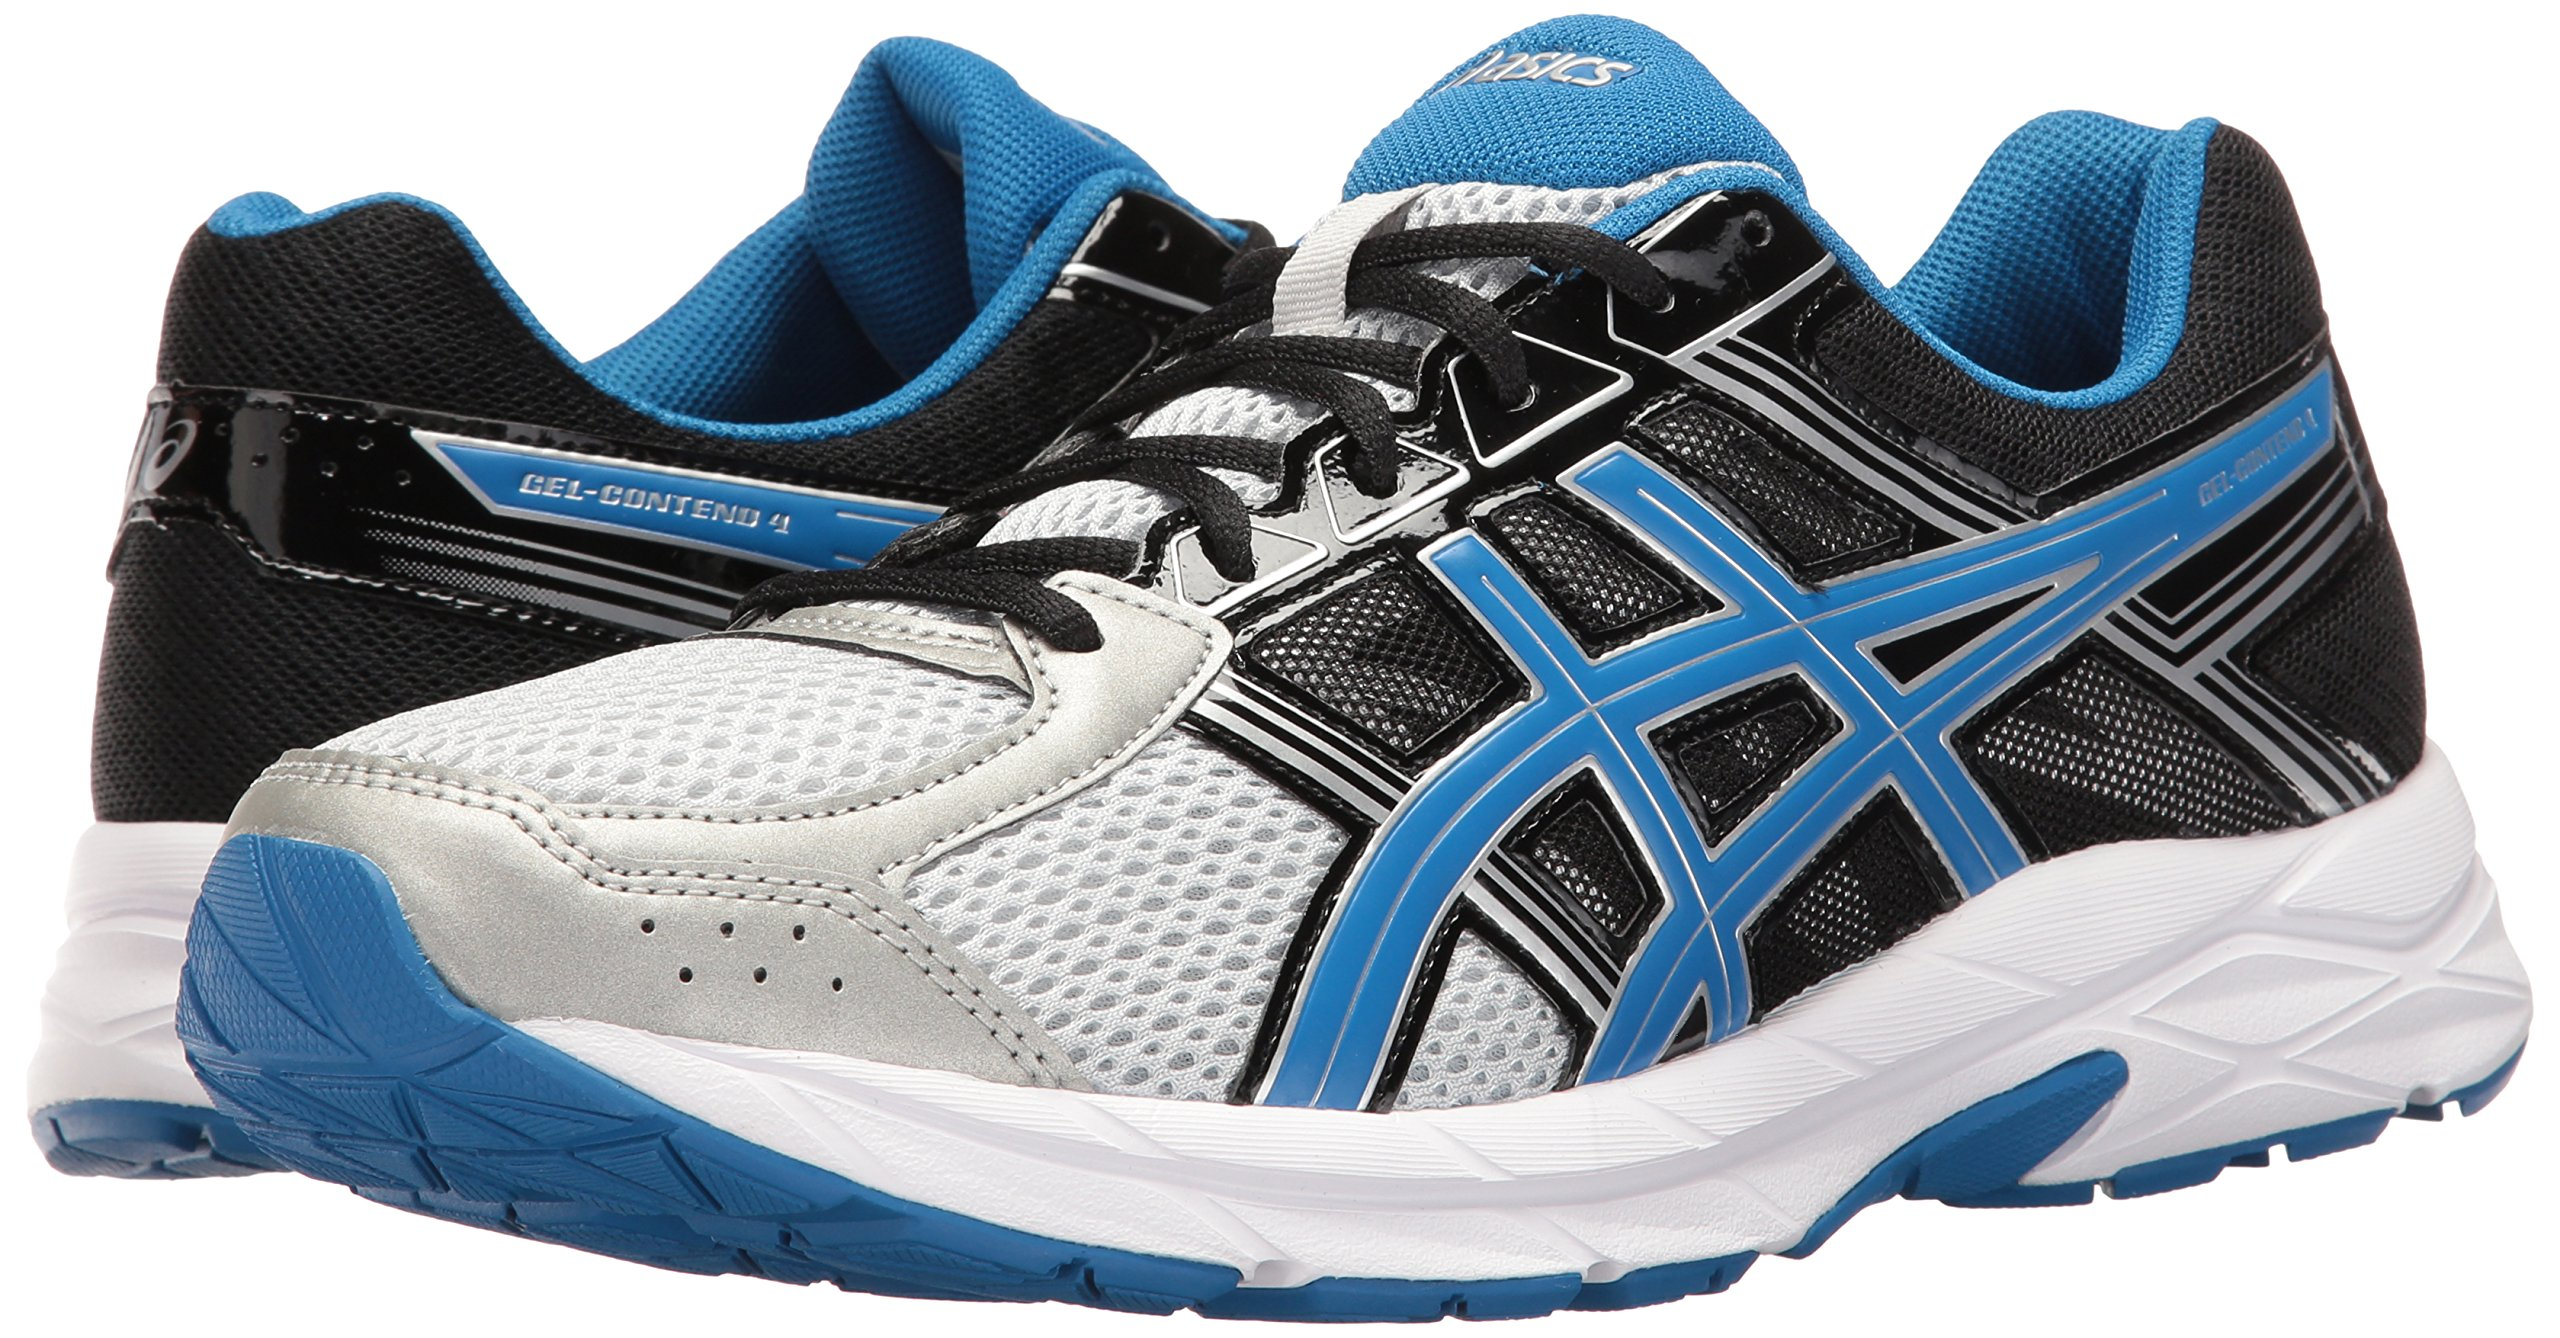 ASICS Men's Gel-Contend 4 Running Shoe, Silver/Classic Blue/Black, 7.5 M US by ASICS (Image #6)